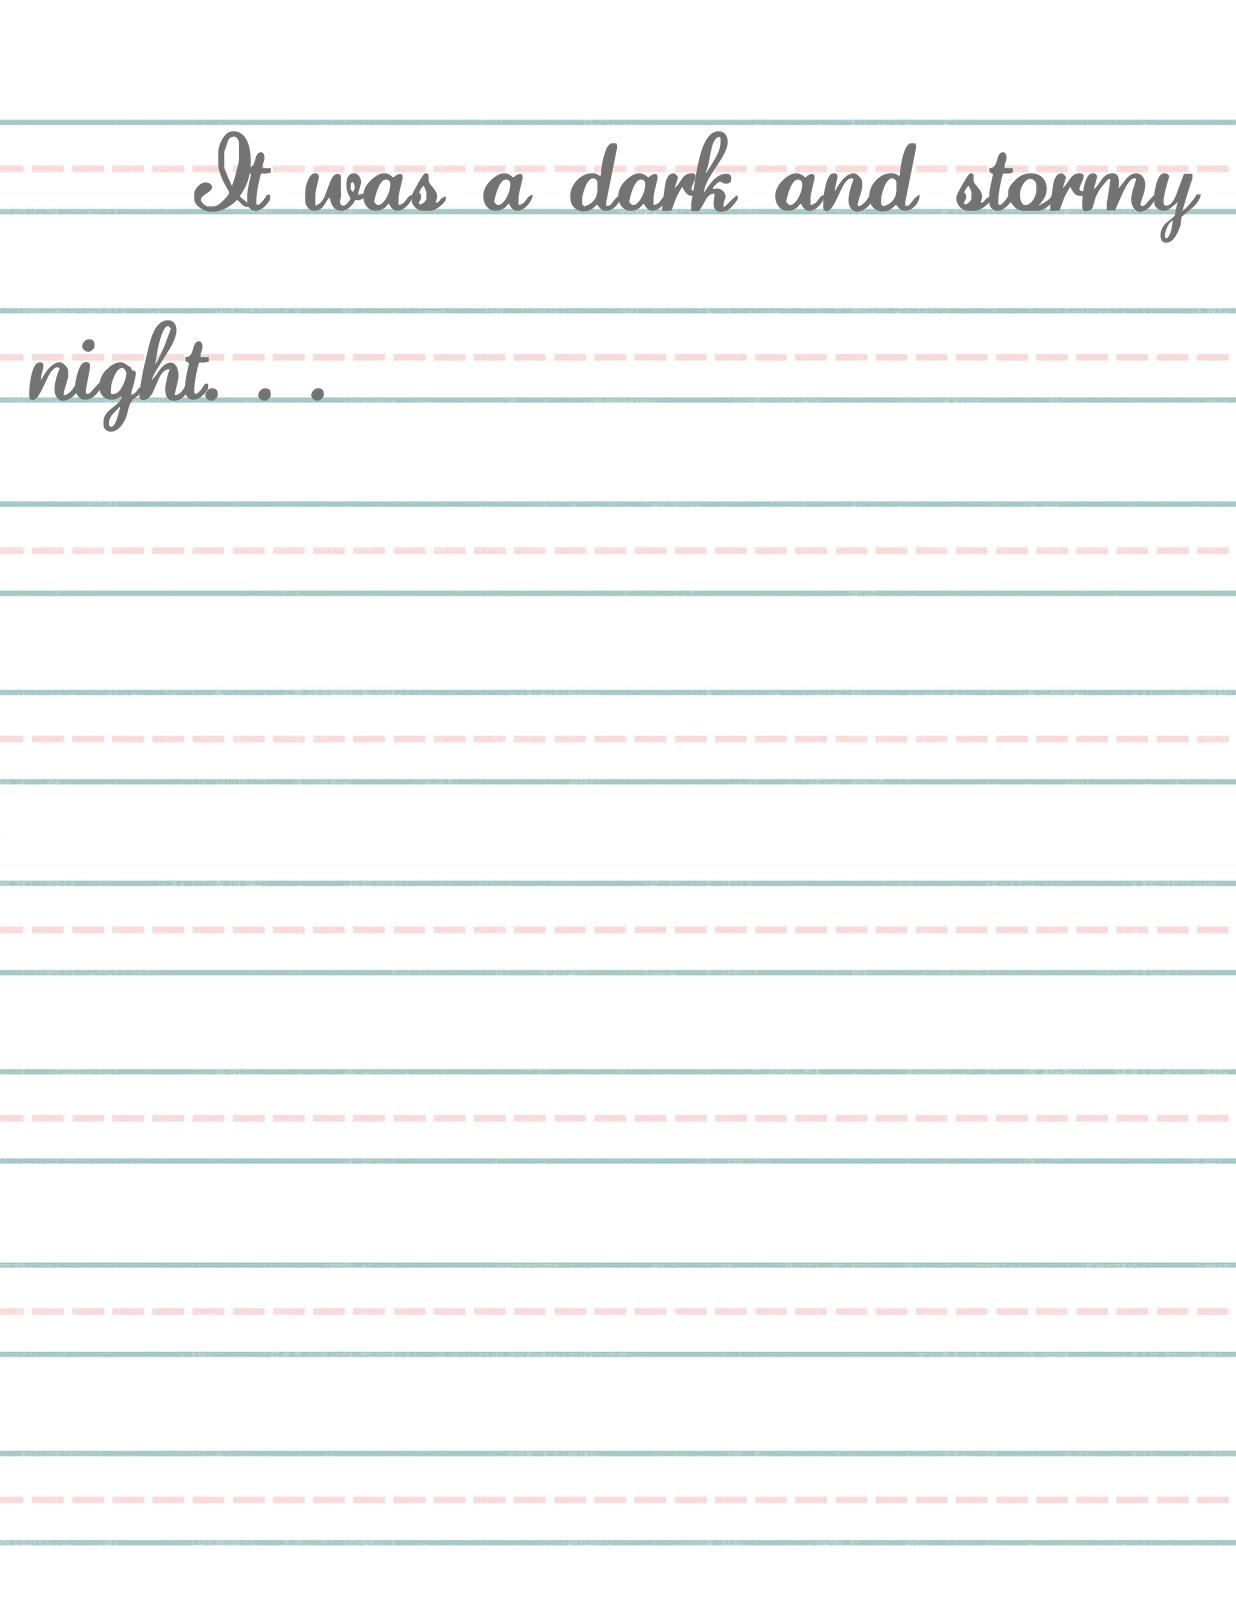 Stationery lined paper template datariouruguay stationery lined paper template spiritdancerdesigns Gallery